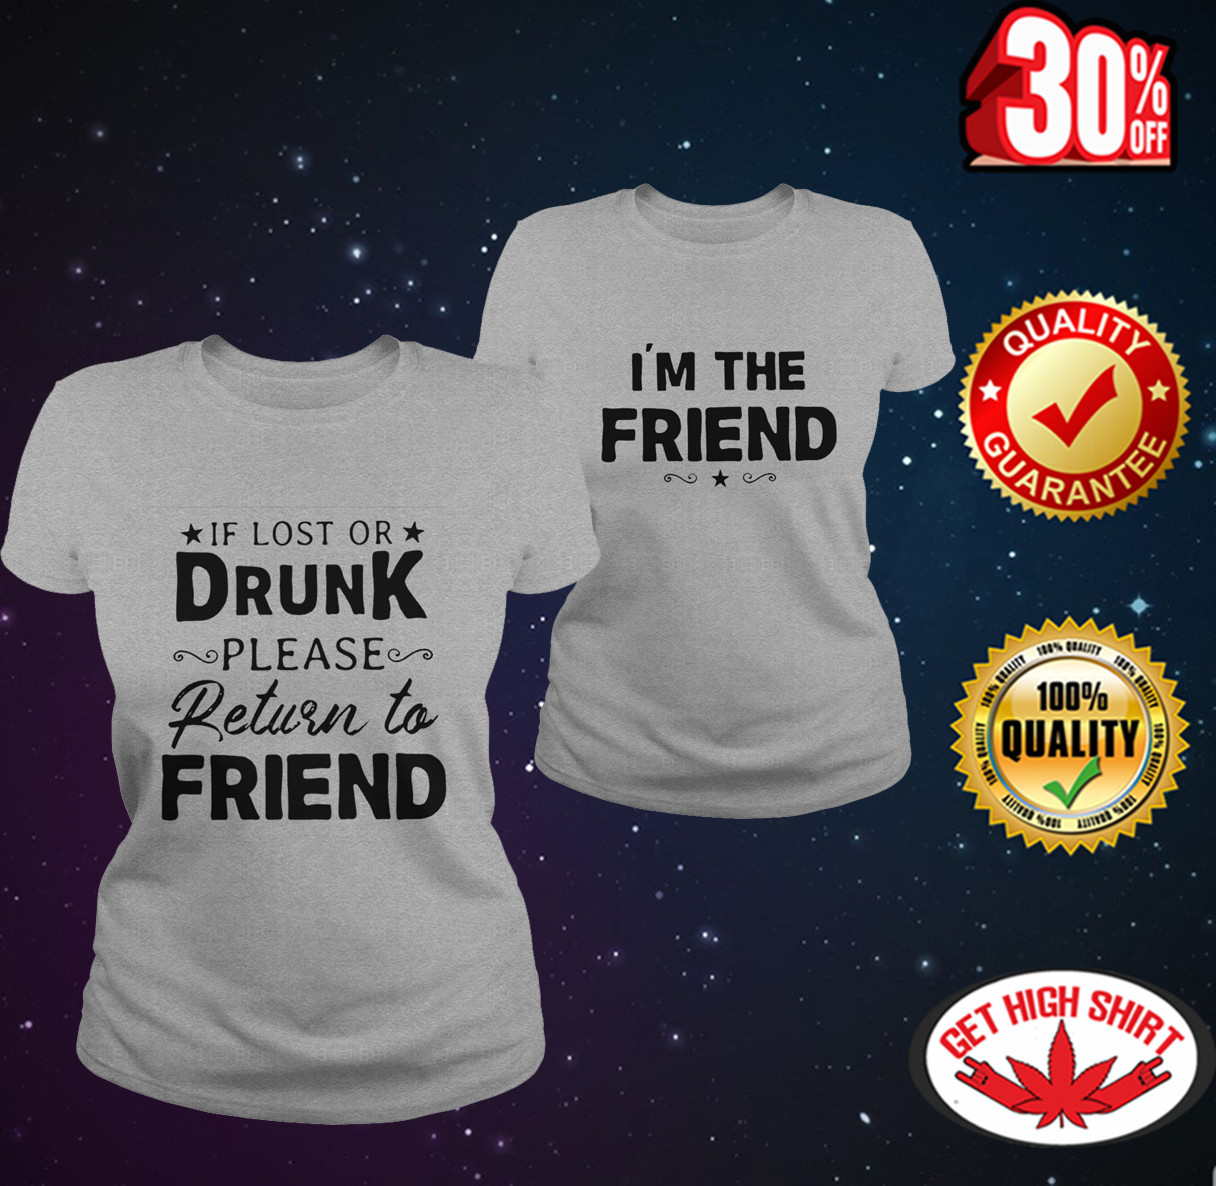 If lost or drunk please return to friend - I'm the friend lady shirt